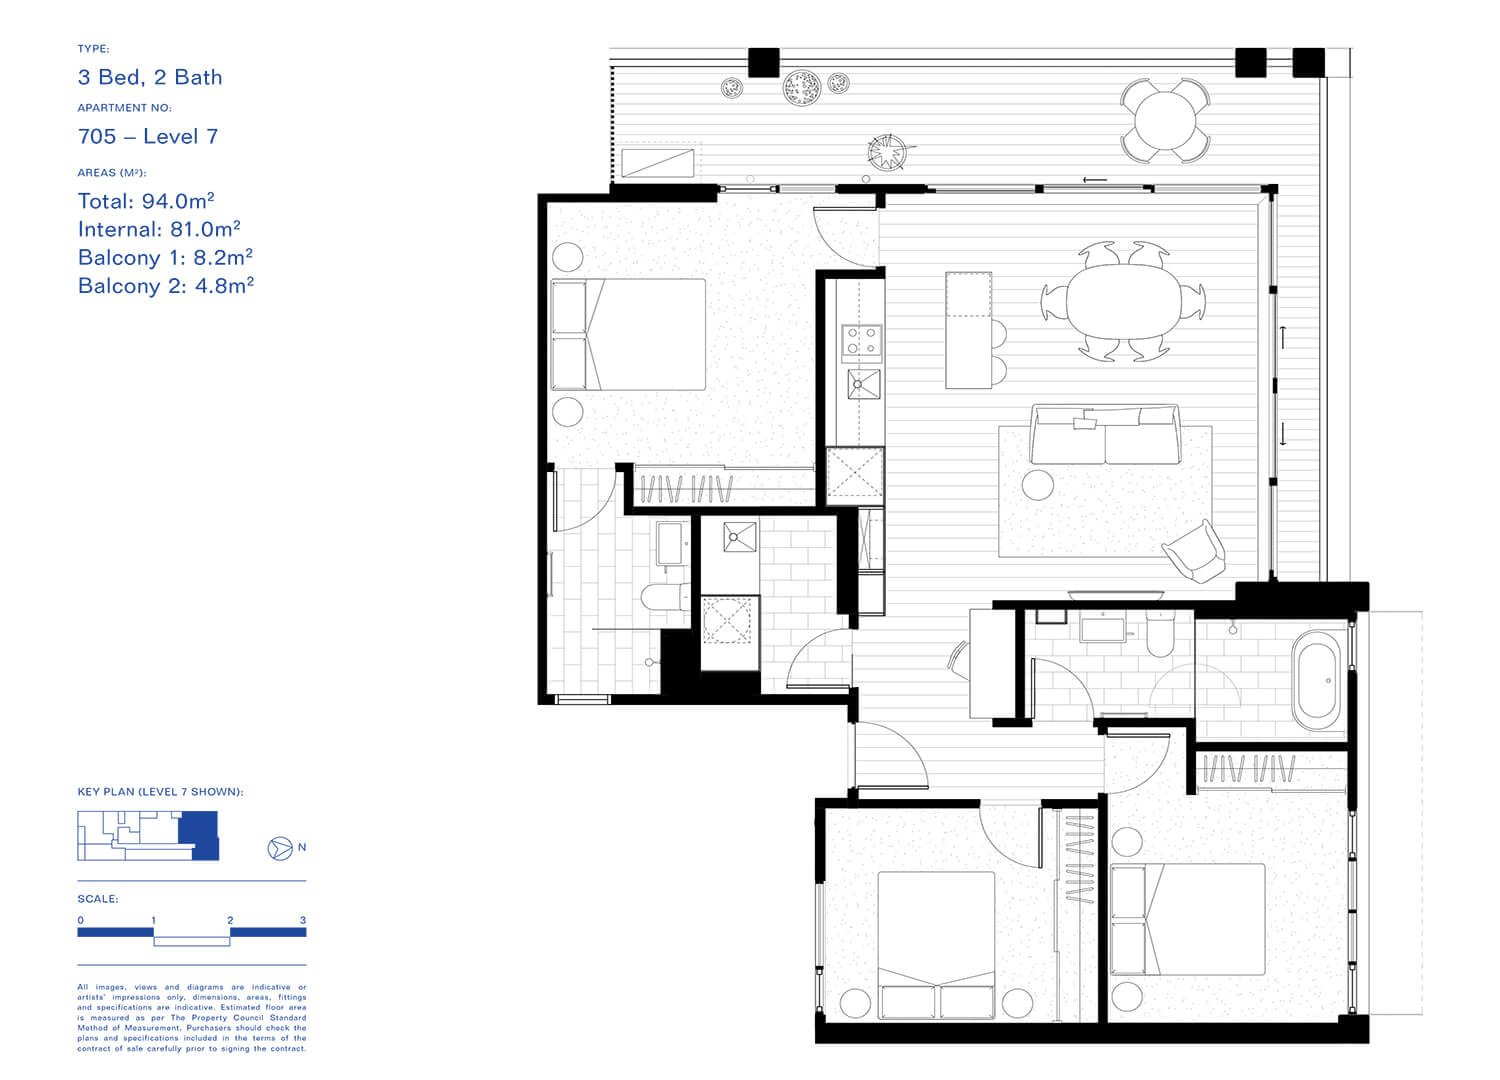 est living open home neometro 17 Union Street floor plan 01